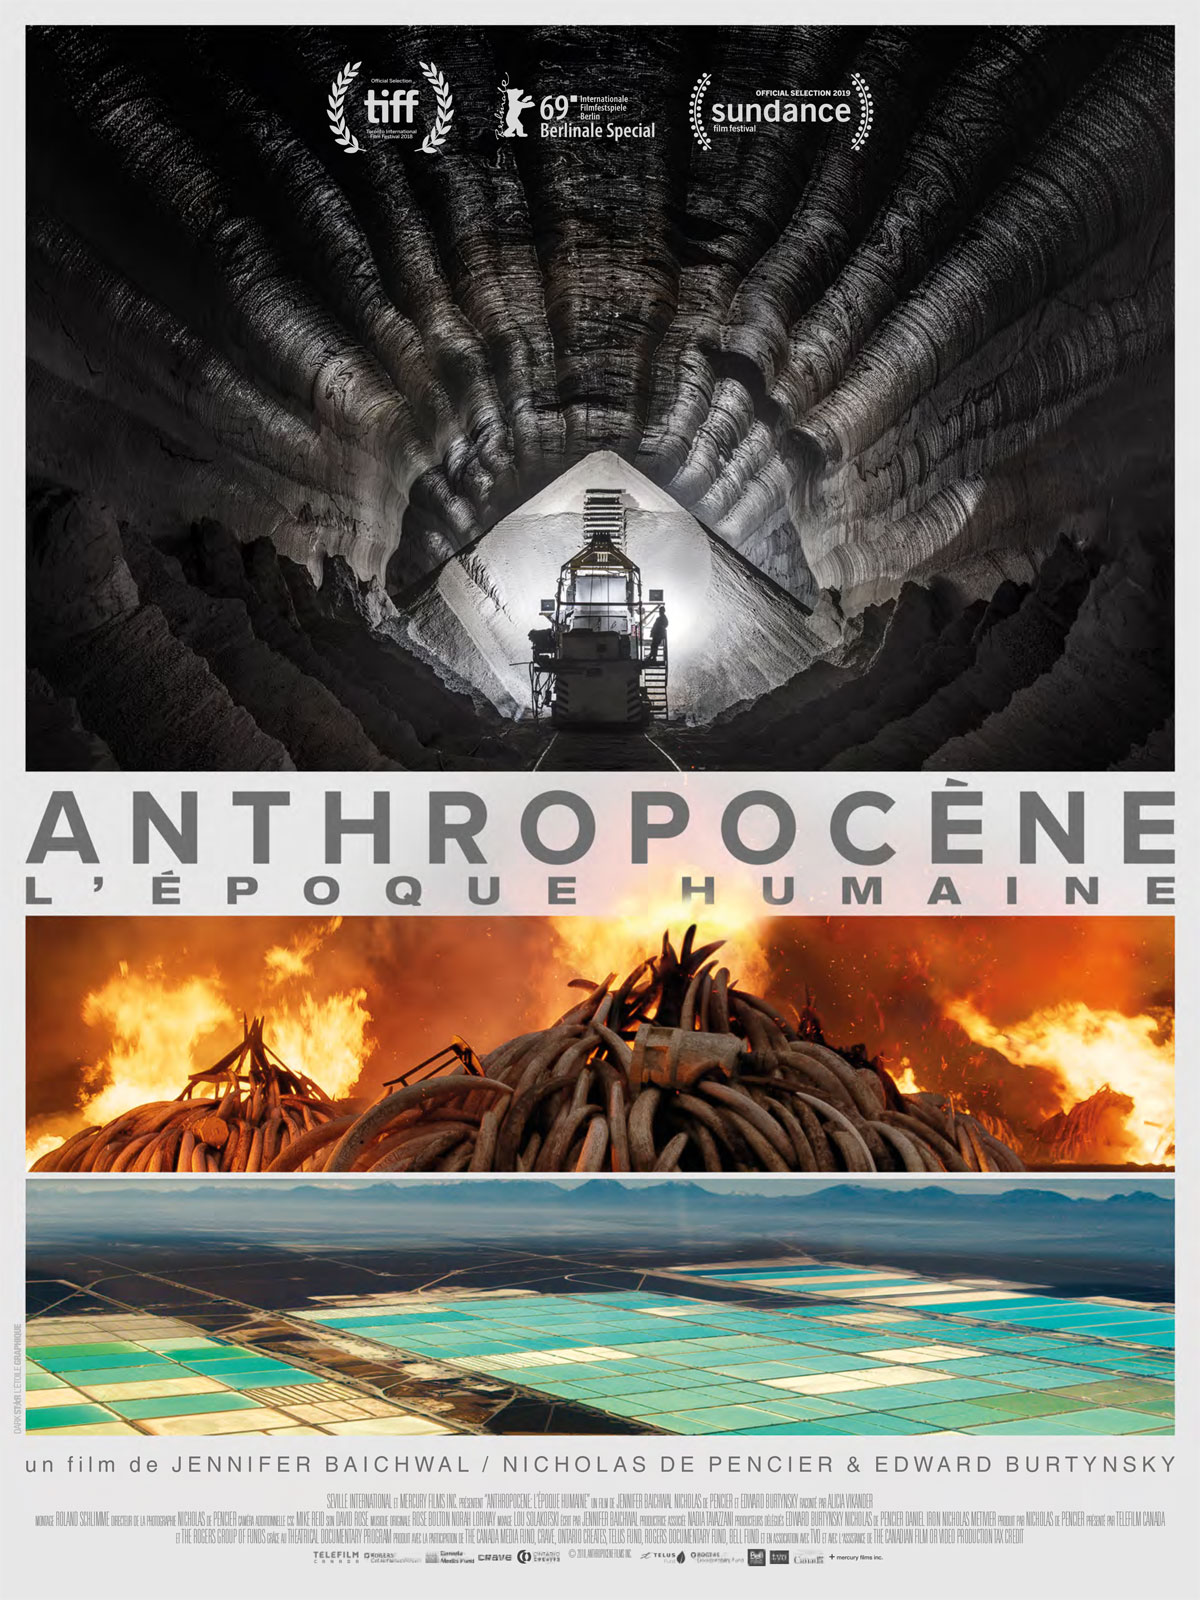 ANTHROPOCENE - L'ERE HUMAINE